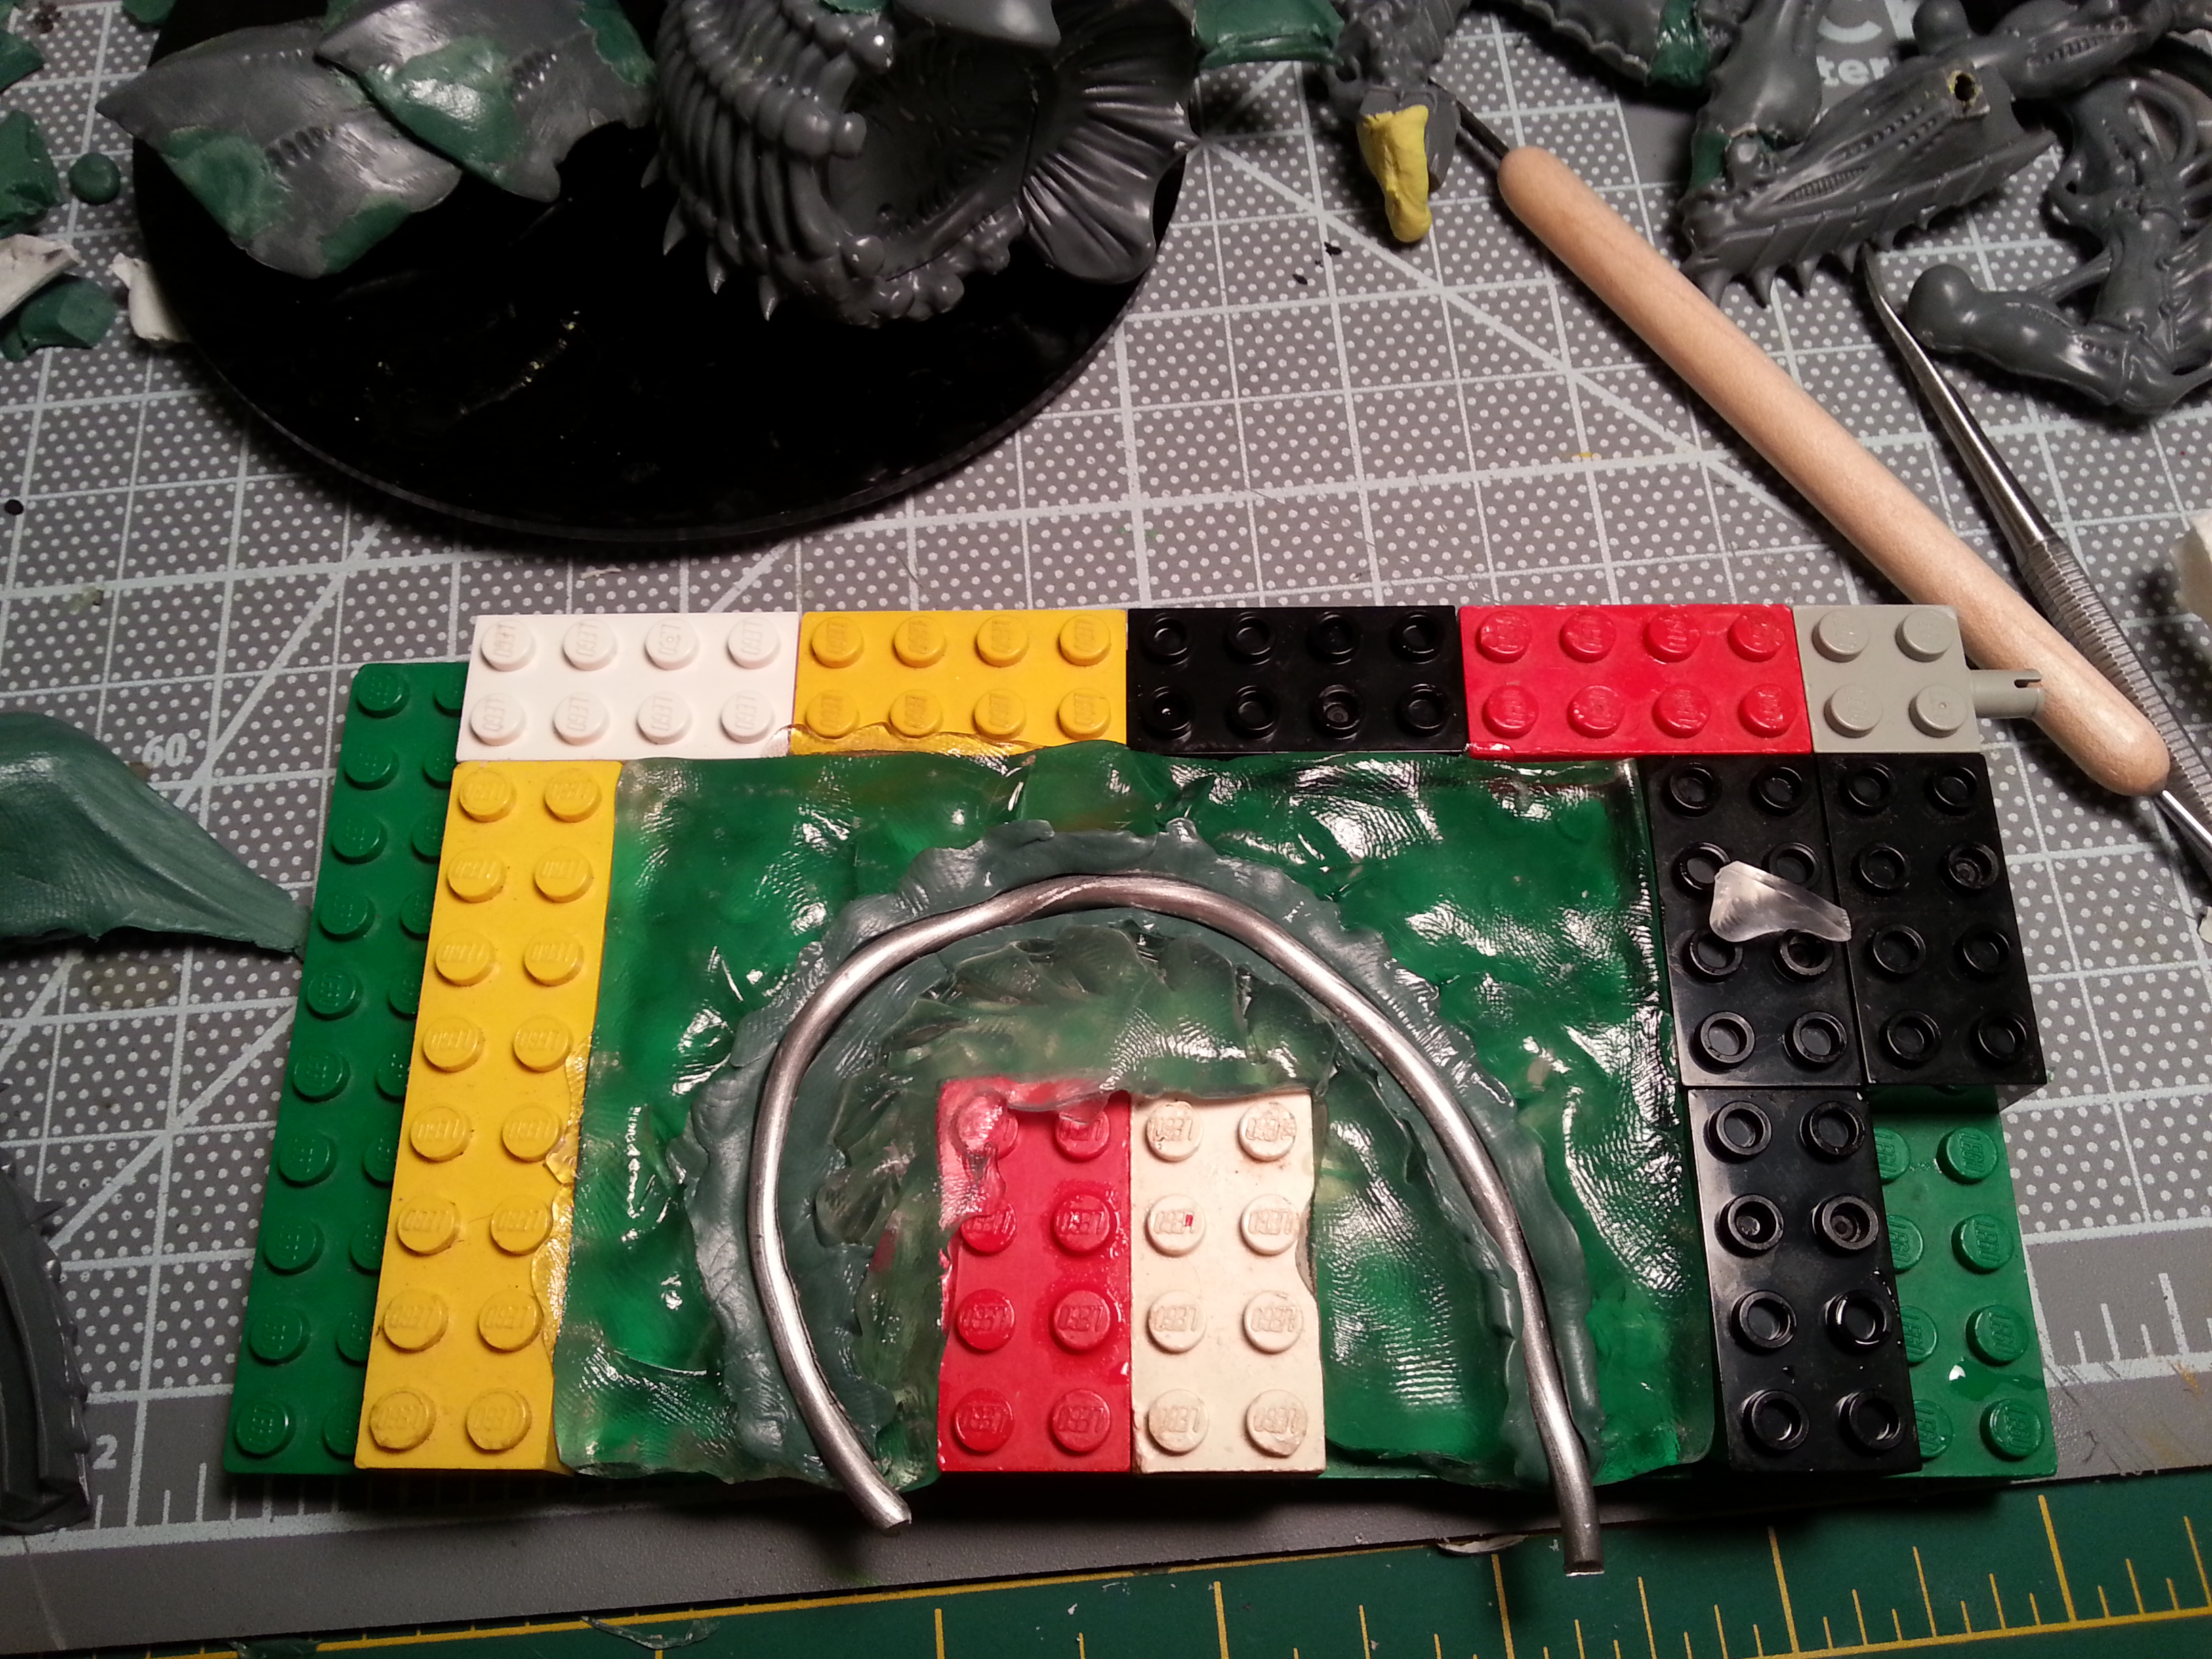 Barbie Step 8 - Bottom layer of greenstuff, with the armature bedded into it.